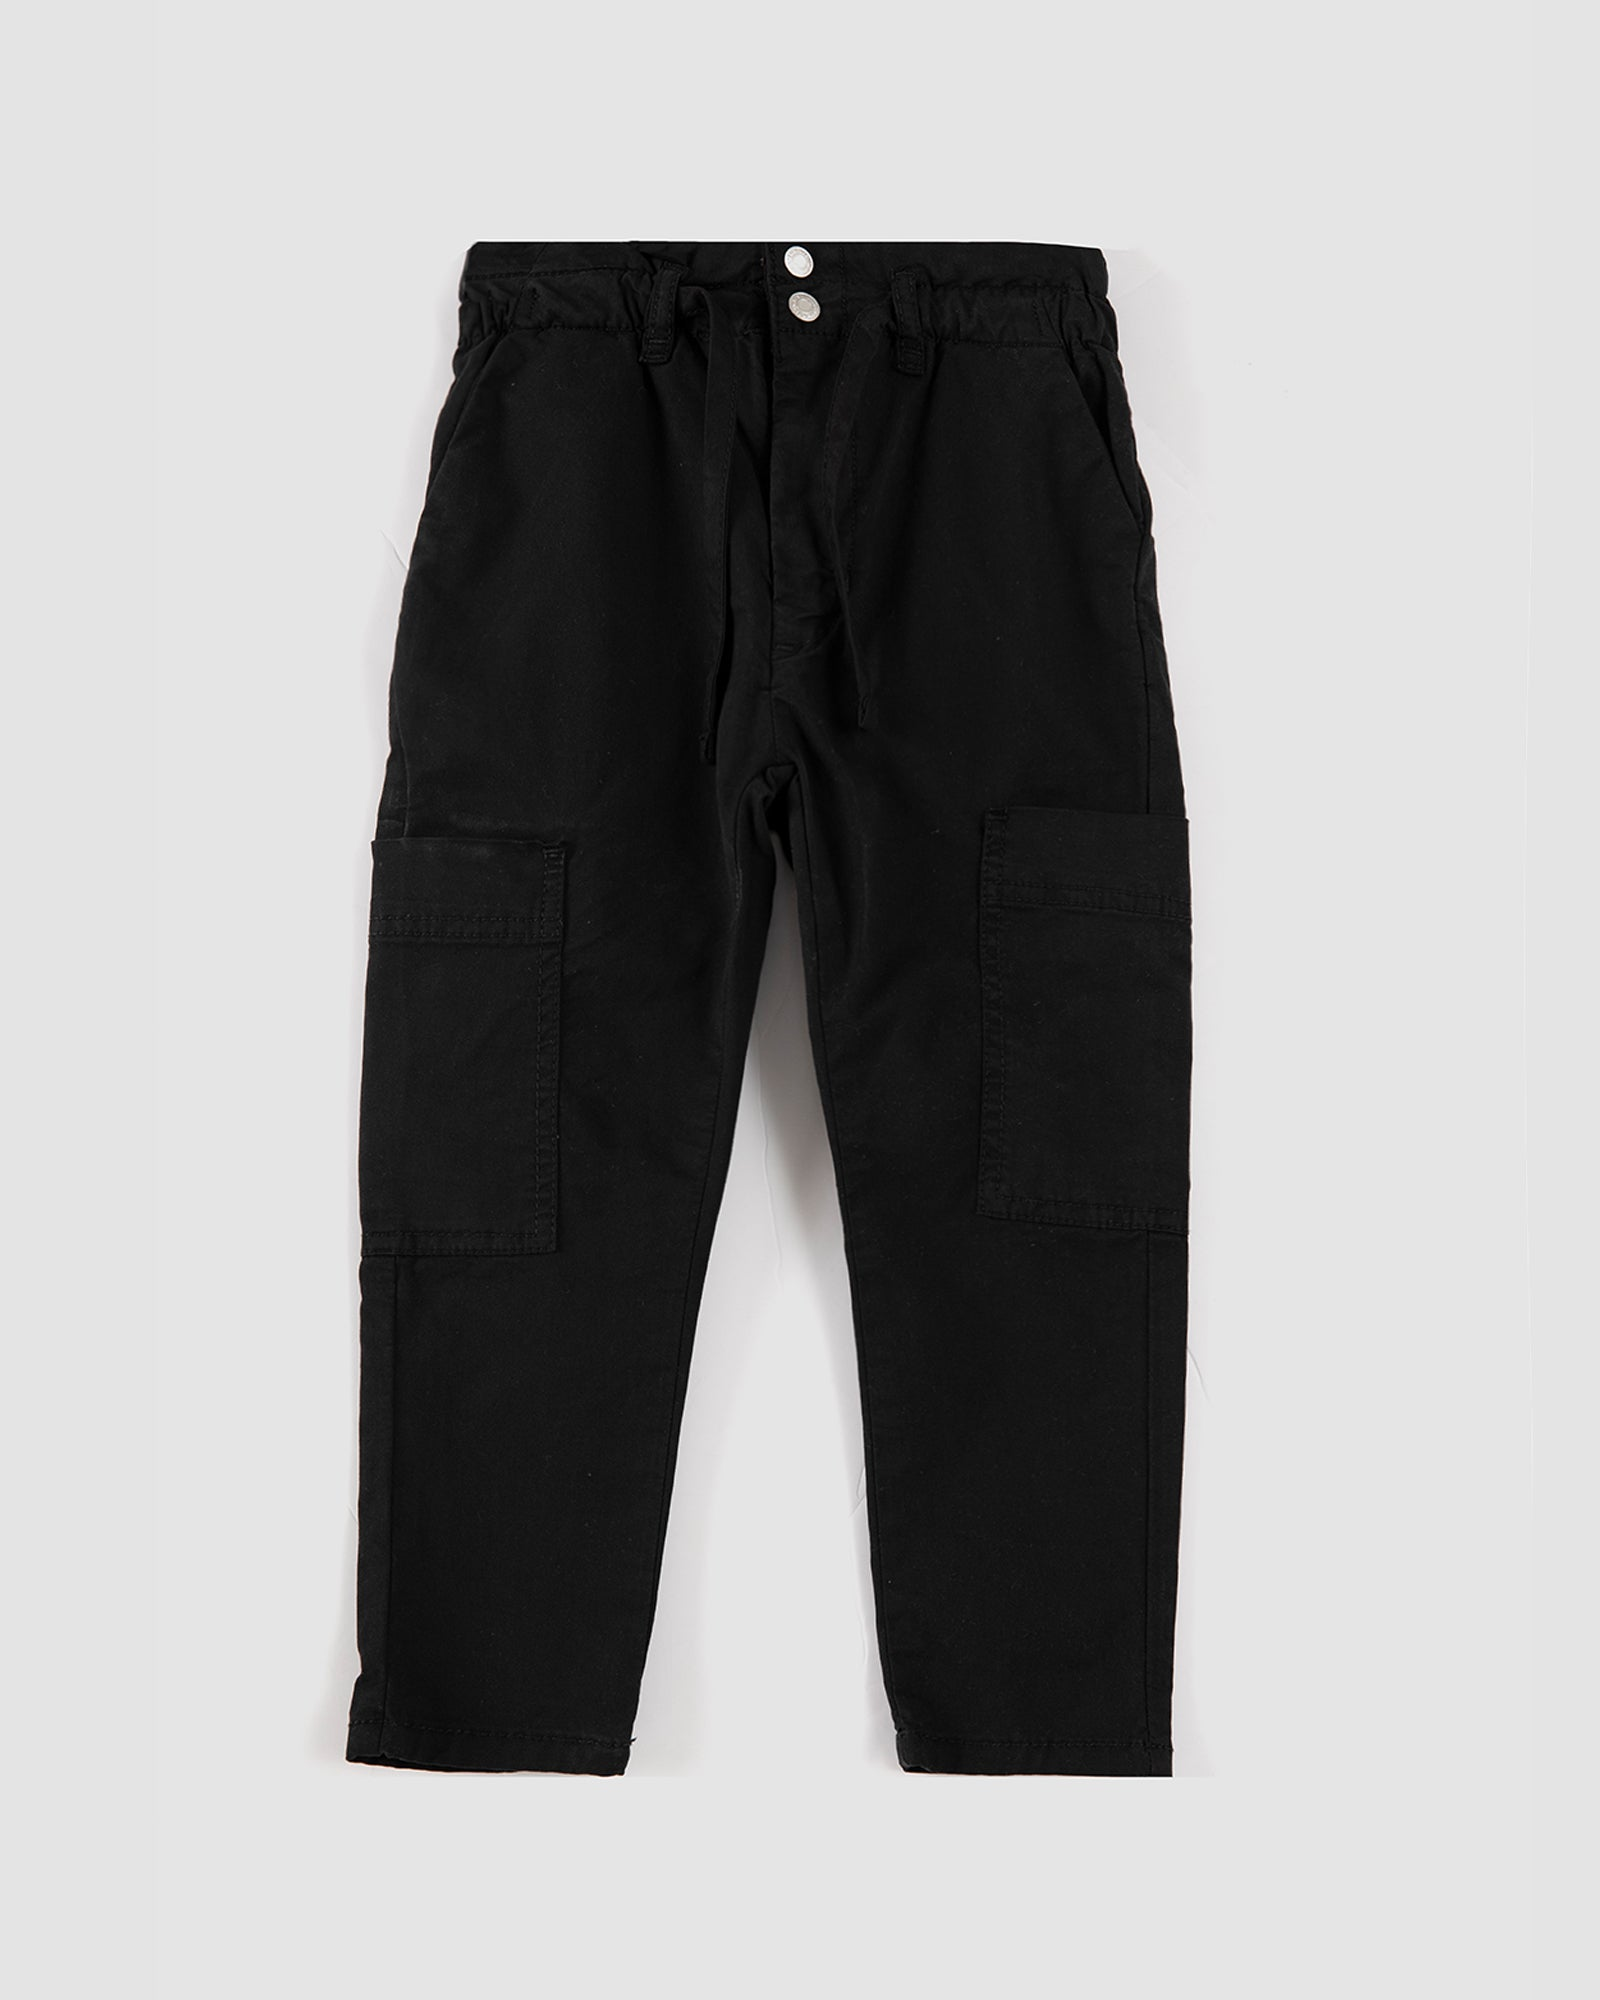 Pants with Pouch Pockets